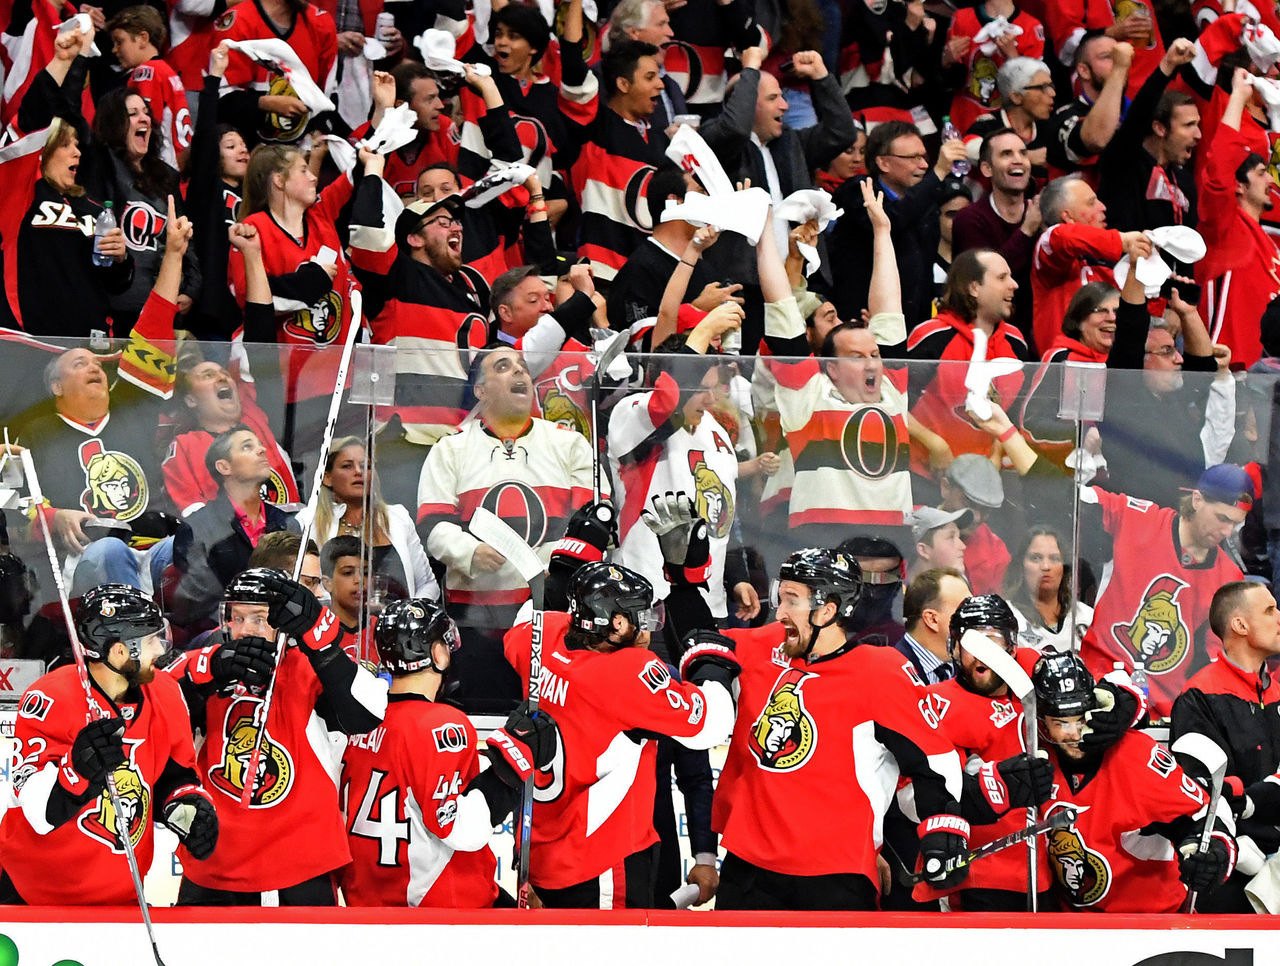 Cropped_2017-05-24t034421z_196253080_nocid_rtrmadp_3_nhl-stanley-cup-playoffs-pittsburgh-penguins-at-ottawa-senators